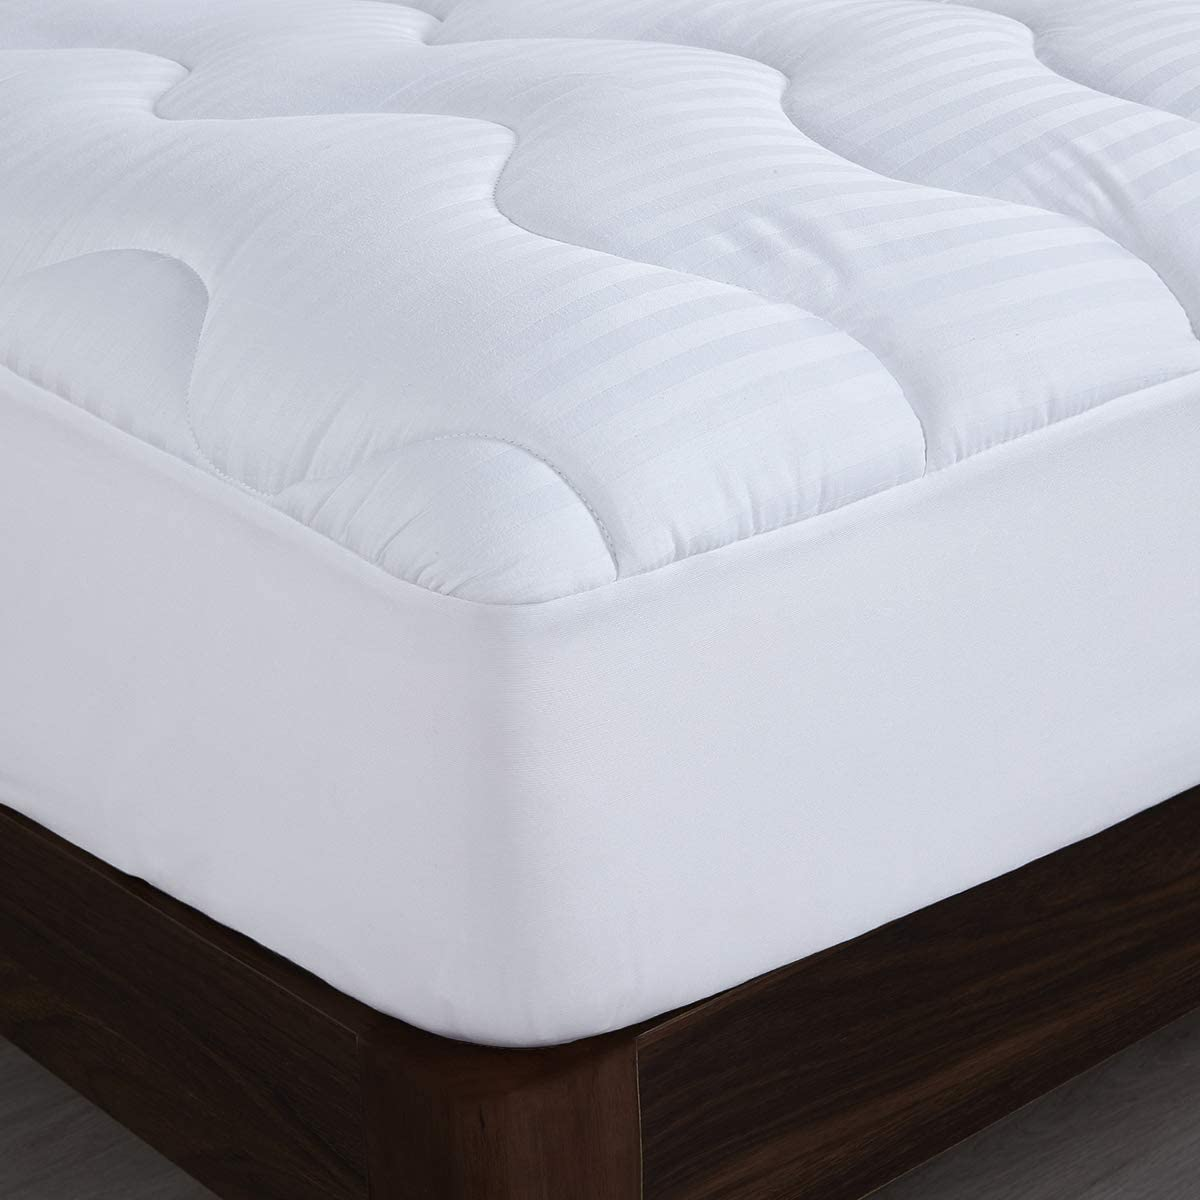 """HOMBYS Thick Quilted 500GSM Cotton Mattress Pad Cover, Queen Pillow Top Mattress Topper Stripe Design, 8-21"""" Deep Pocket with Down Alternative Fill"""